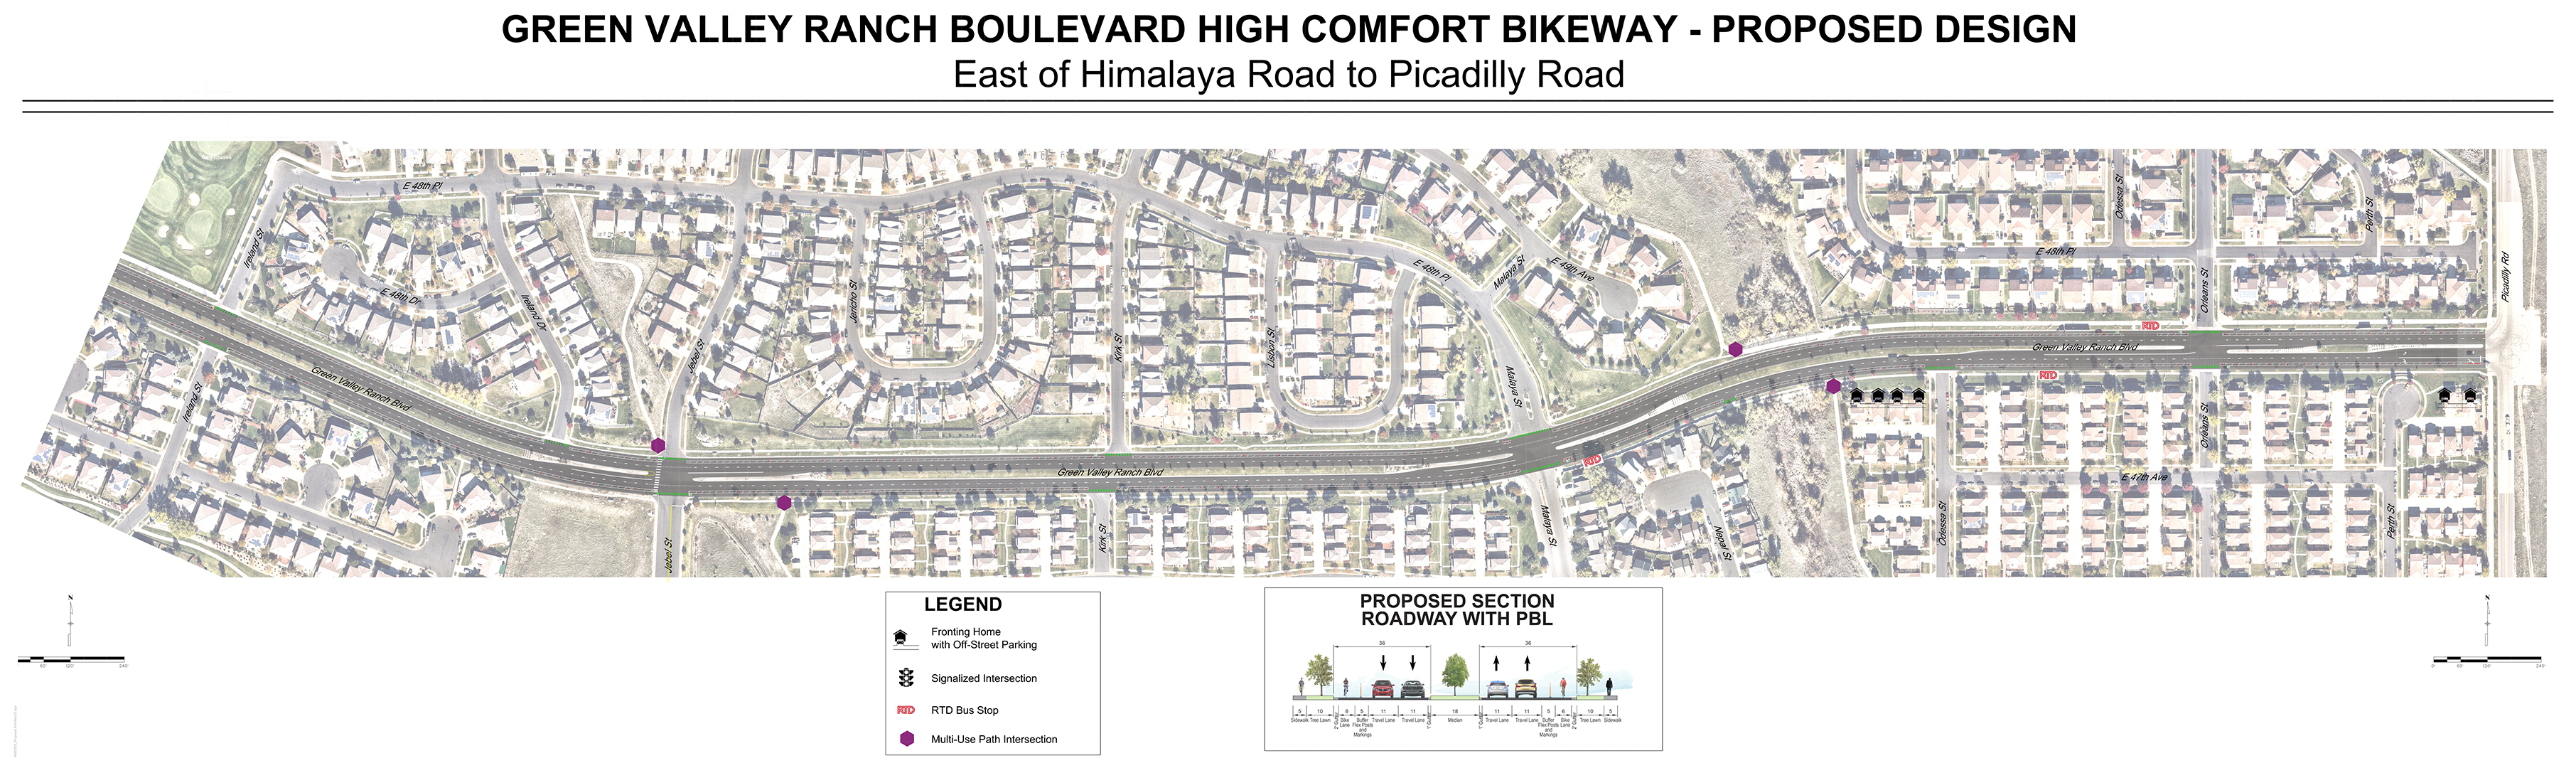 map of eastern half of proposed bikeway